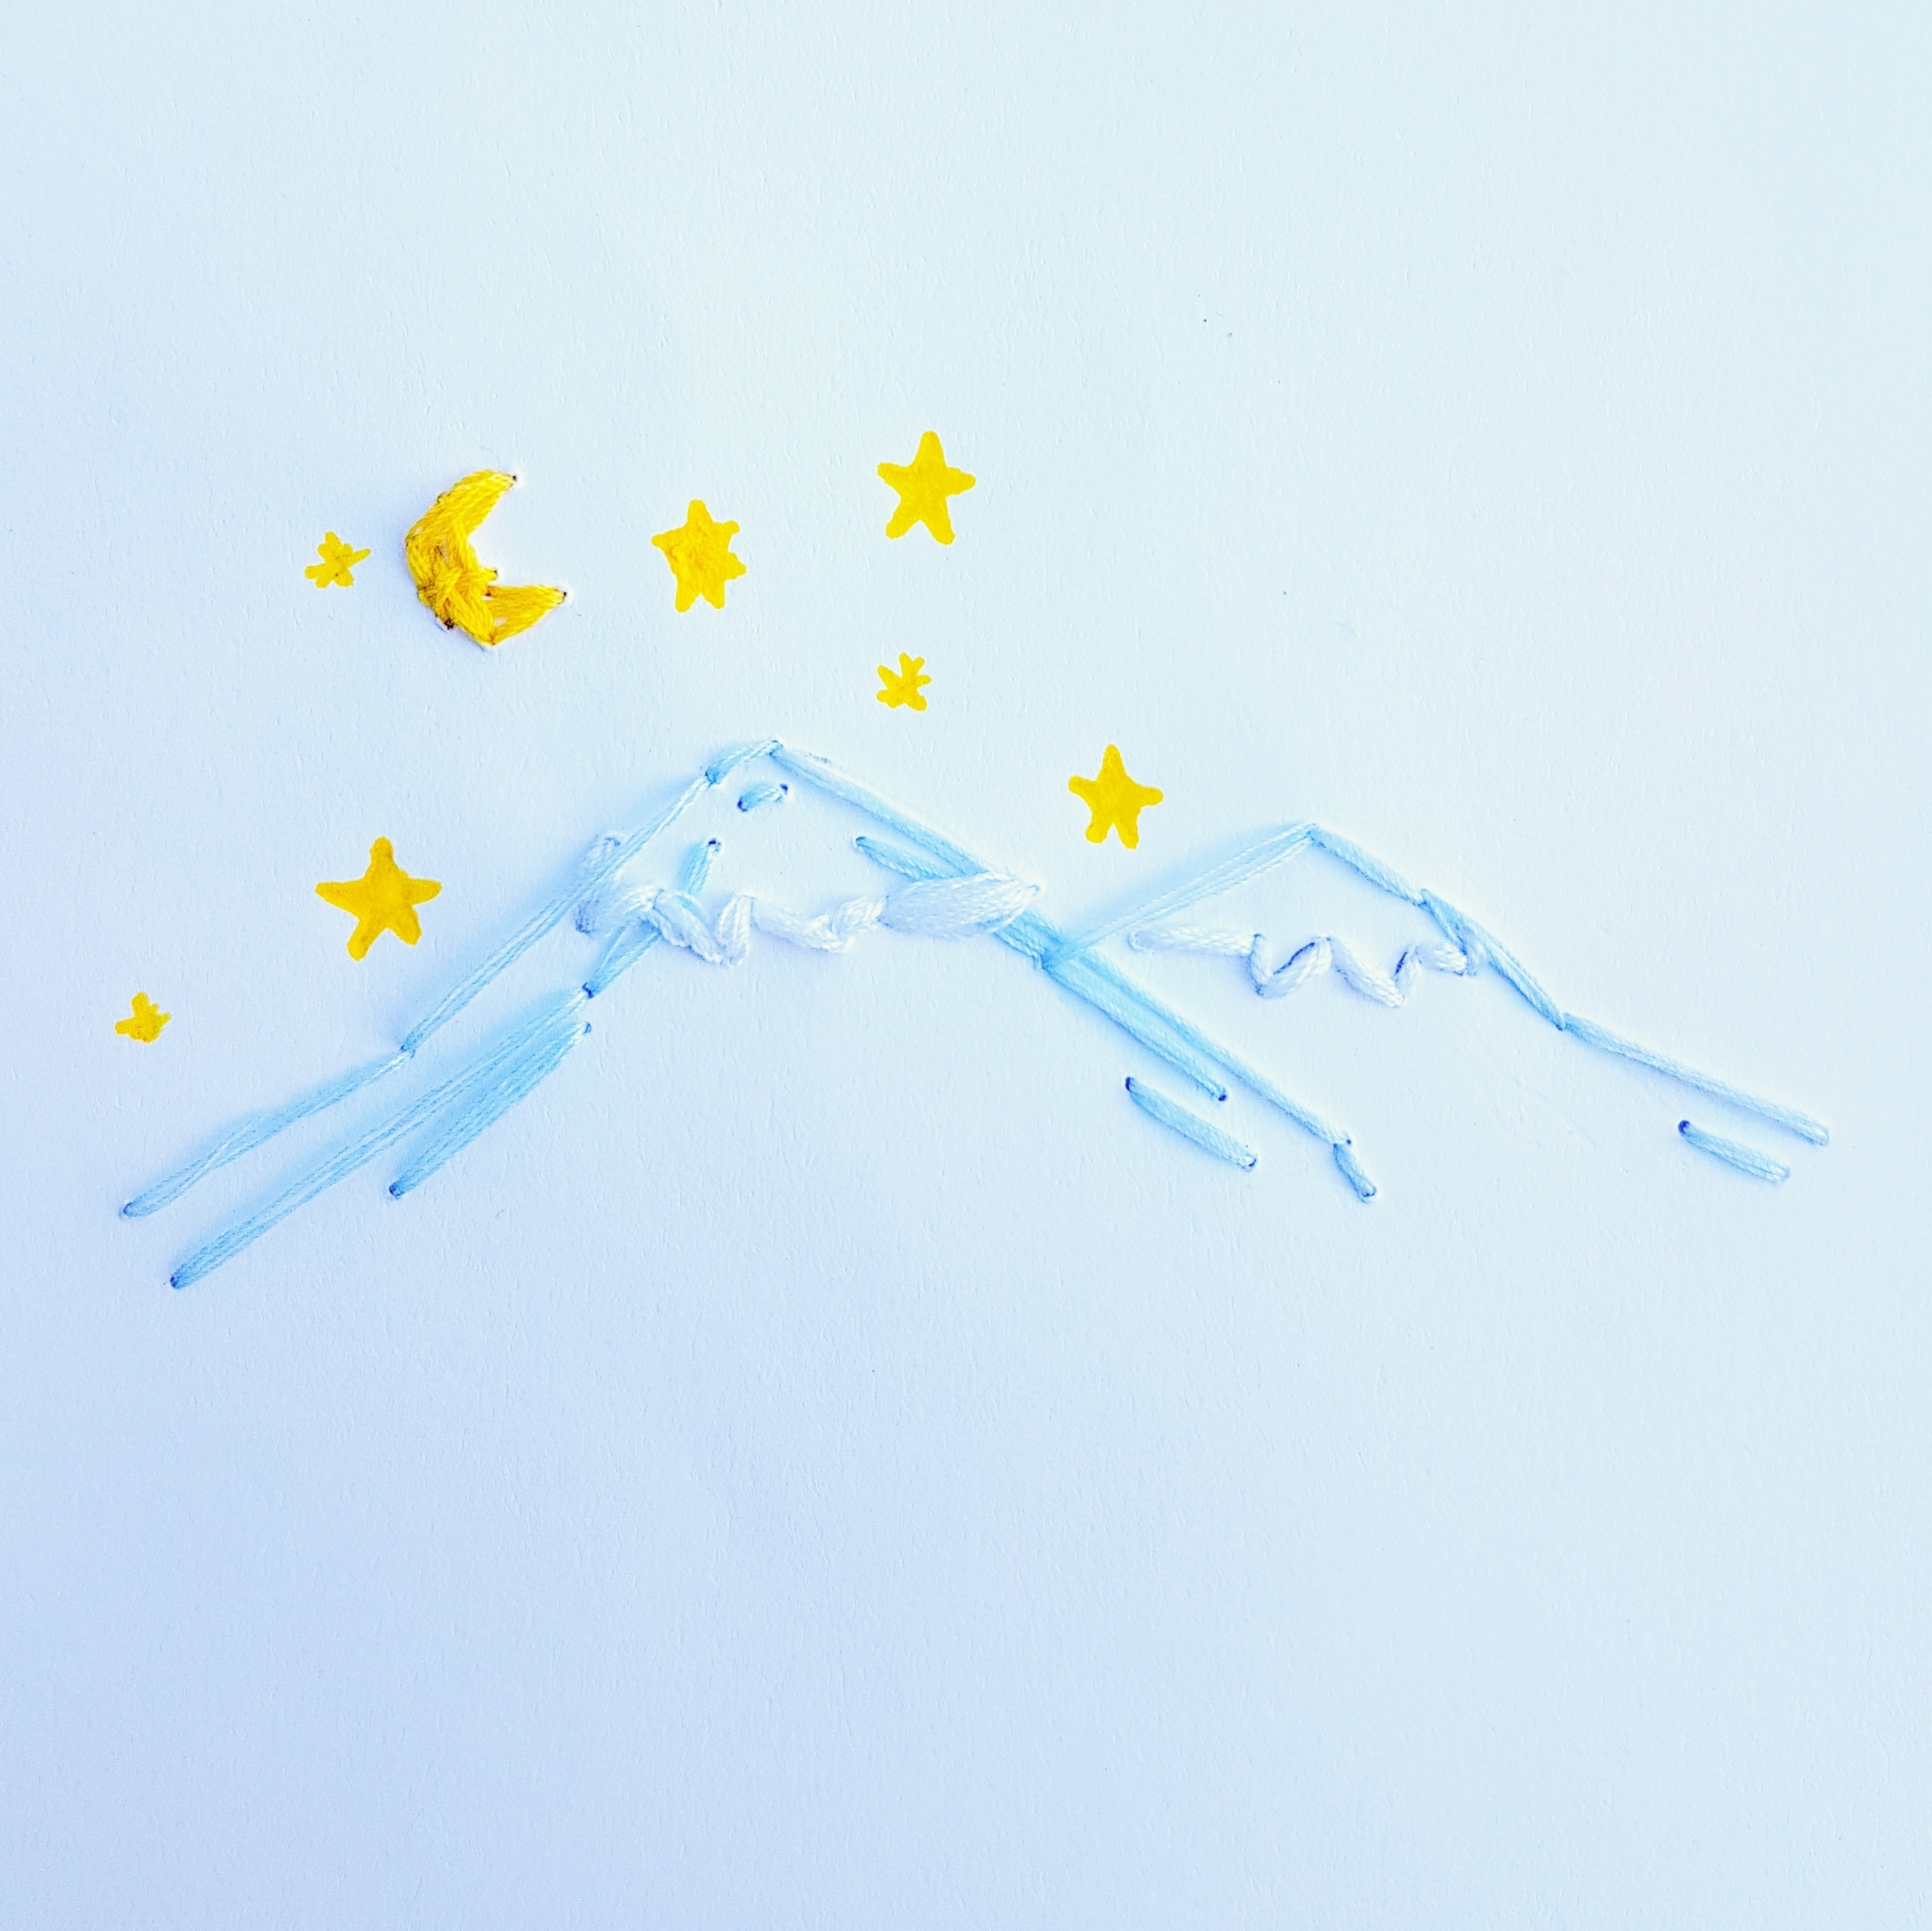 DIY Embroidered Paper Art Stargazing